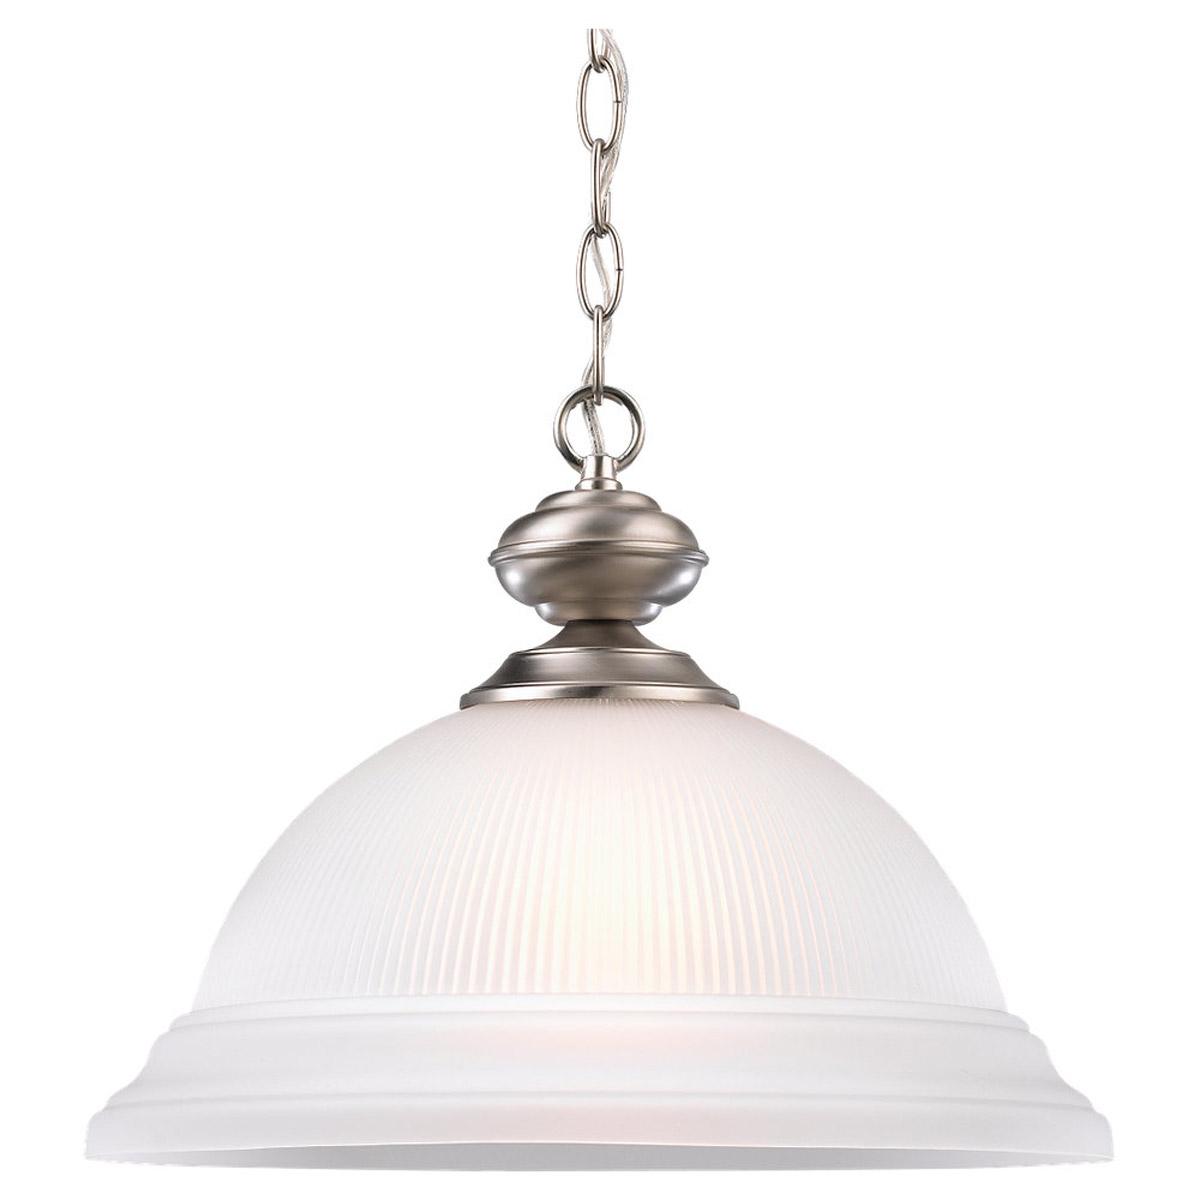 Sea Gull Lighting Mullica Hill 1 Light Pendant in Brushed Nickel 6640-962 photo